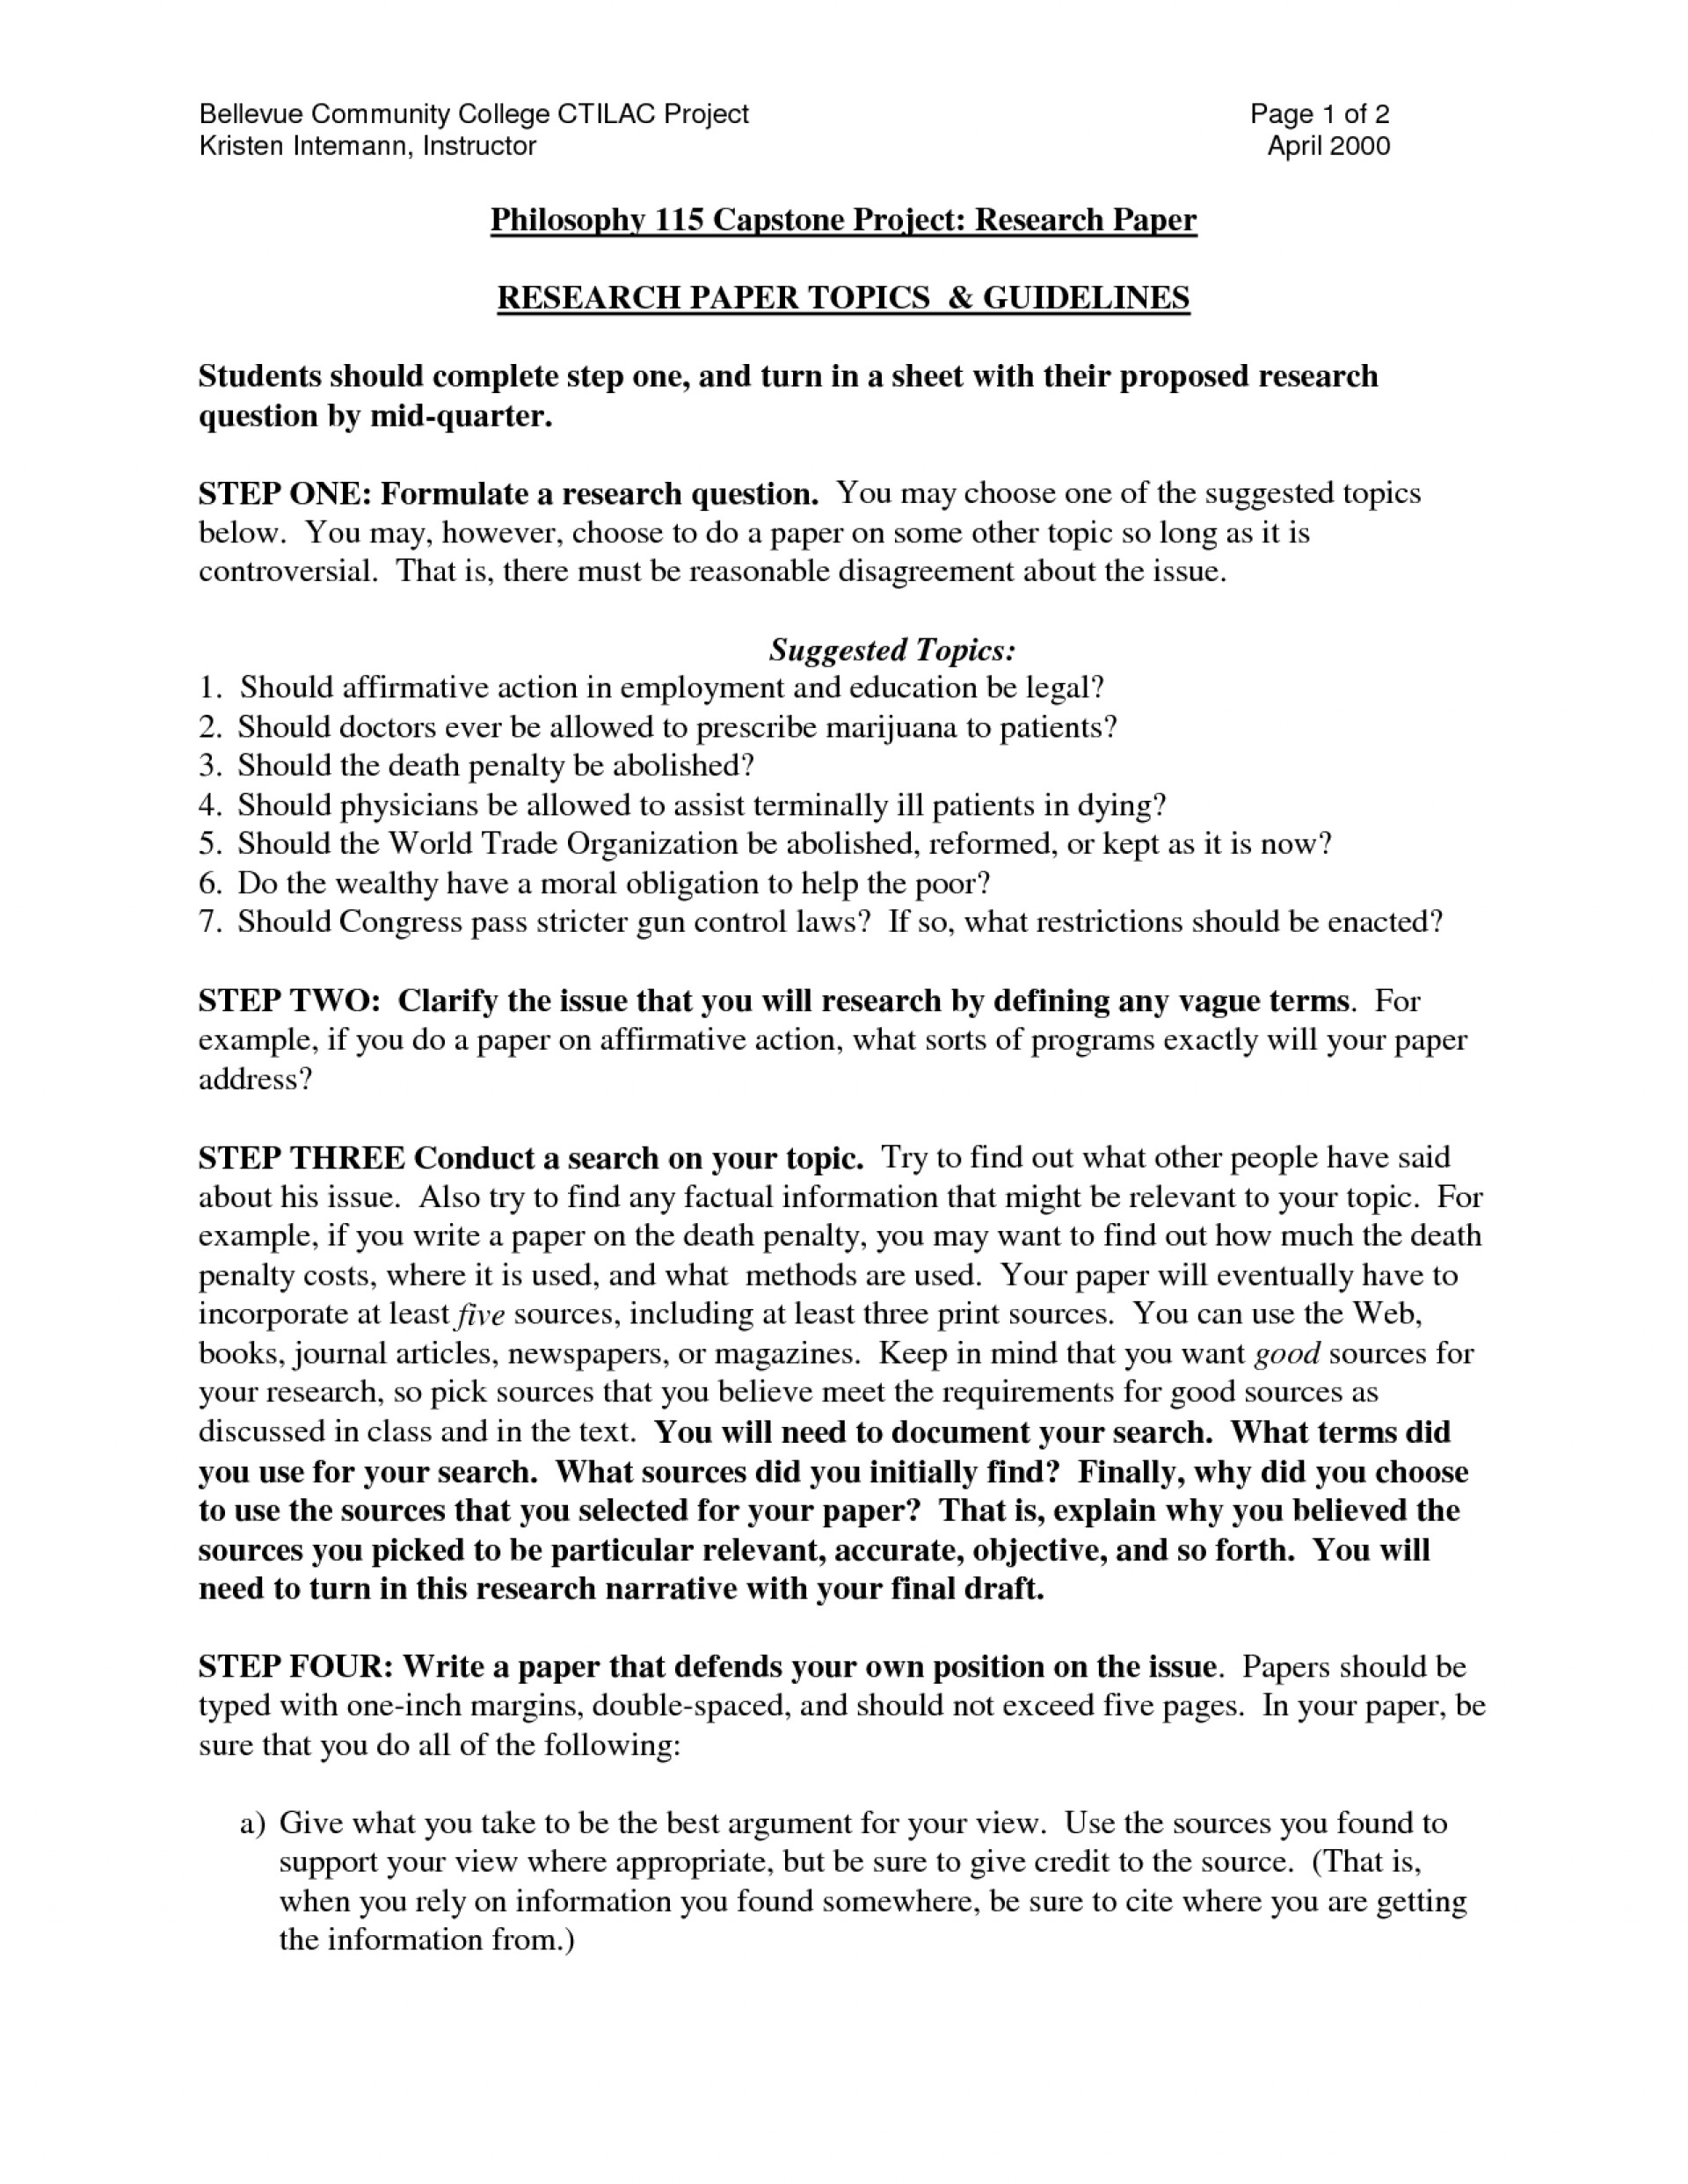 002 College Research Paper Format Example Fearsome Apa Pdf 1920